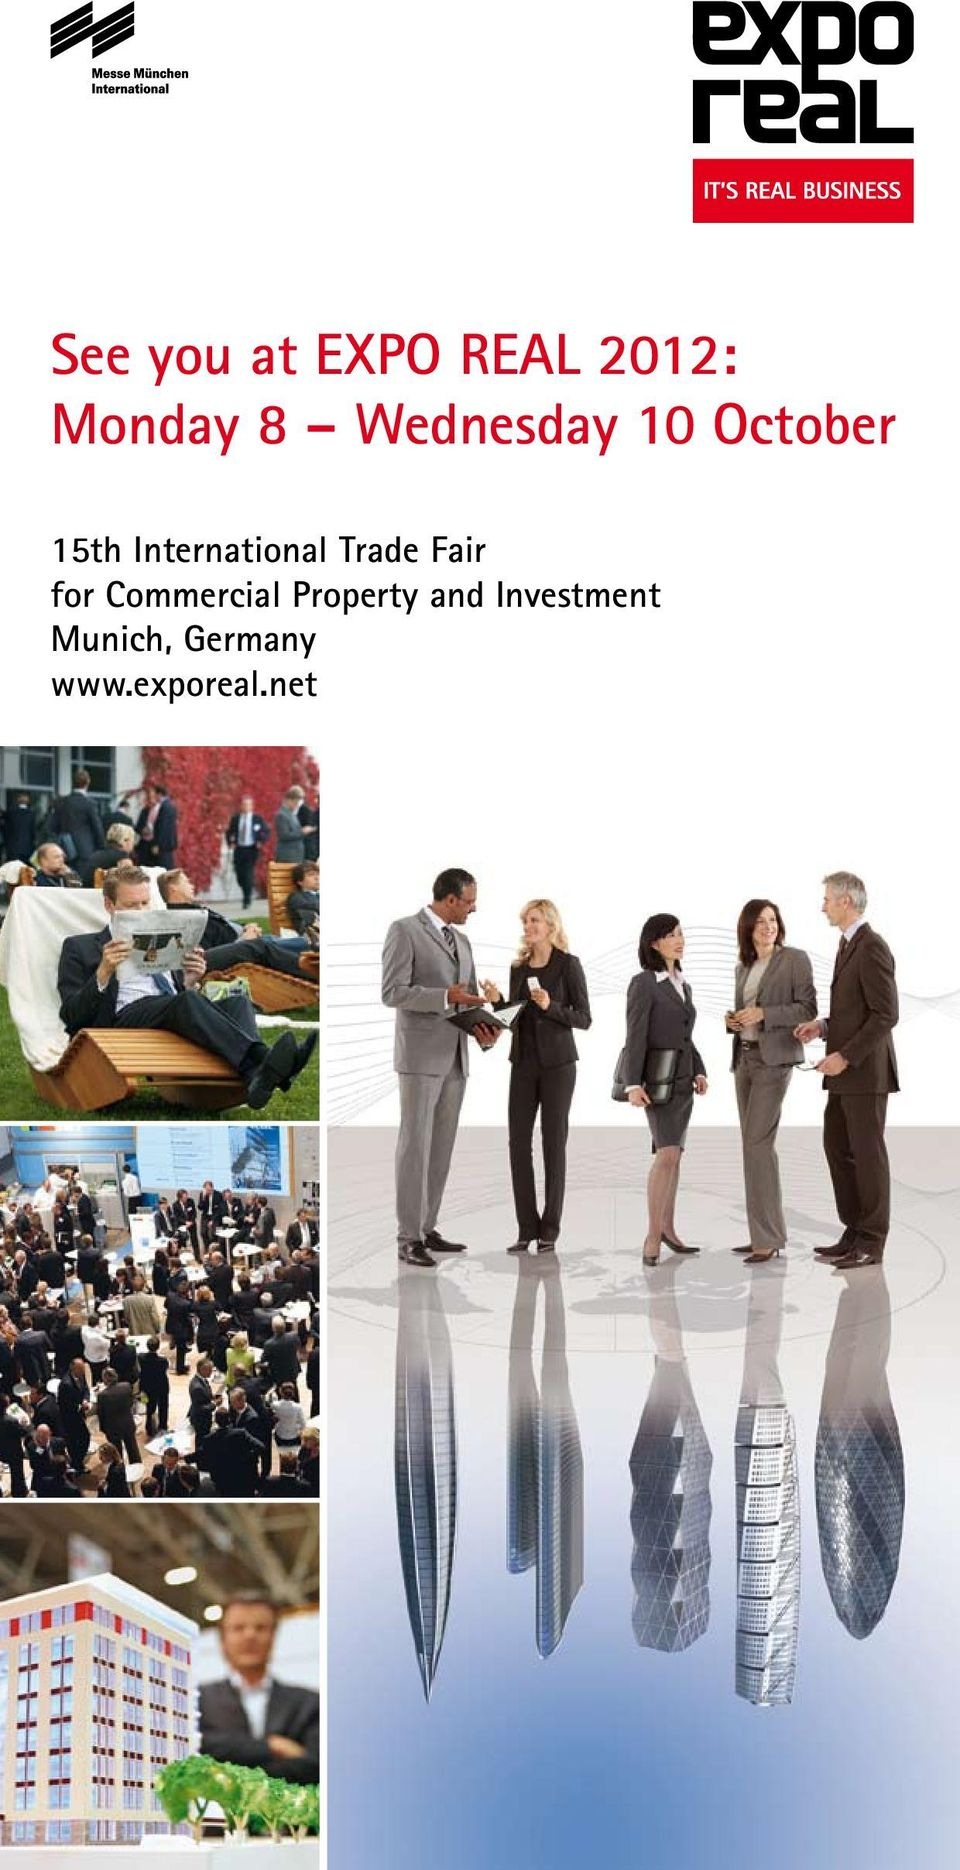 15th 14th for Commercial International Property Trade Fair and Investment for Munich,